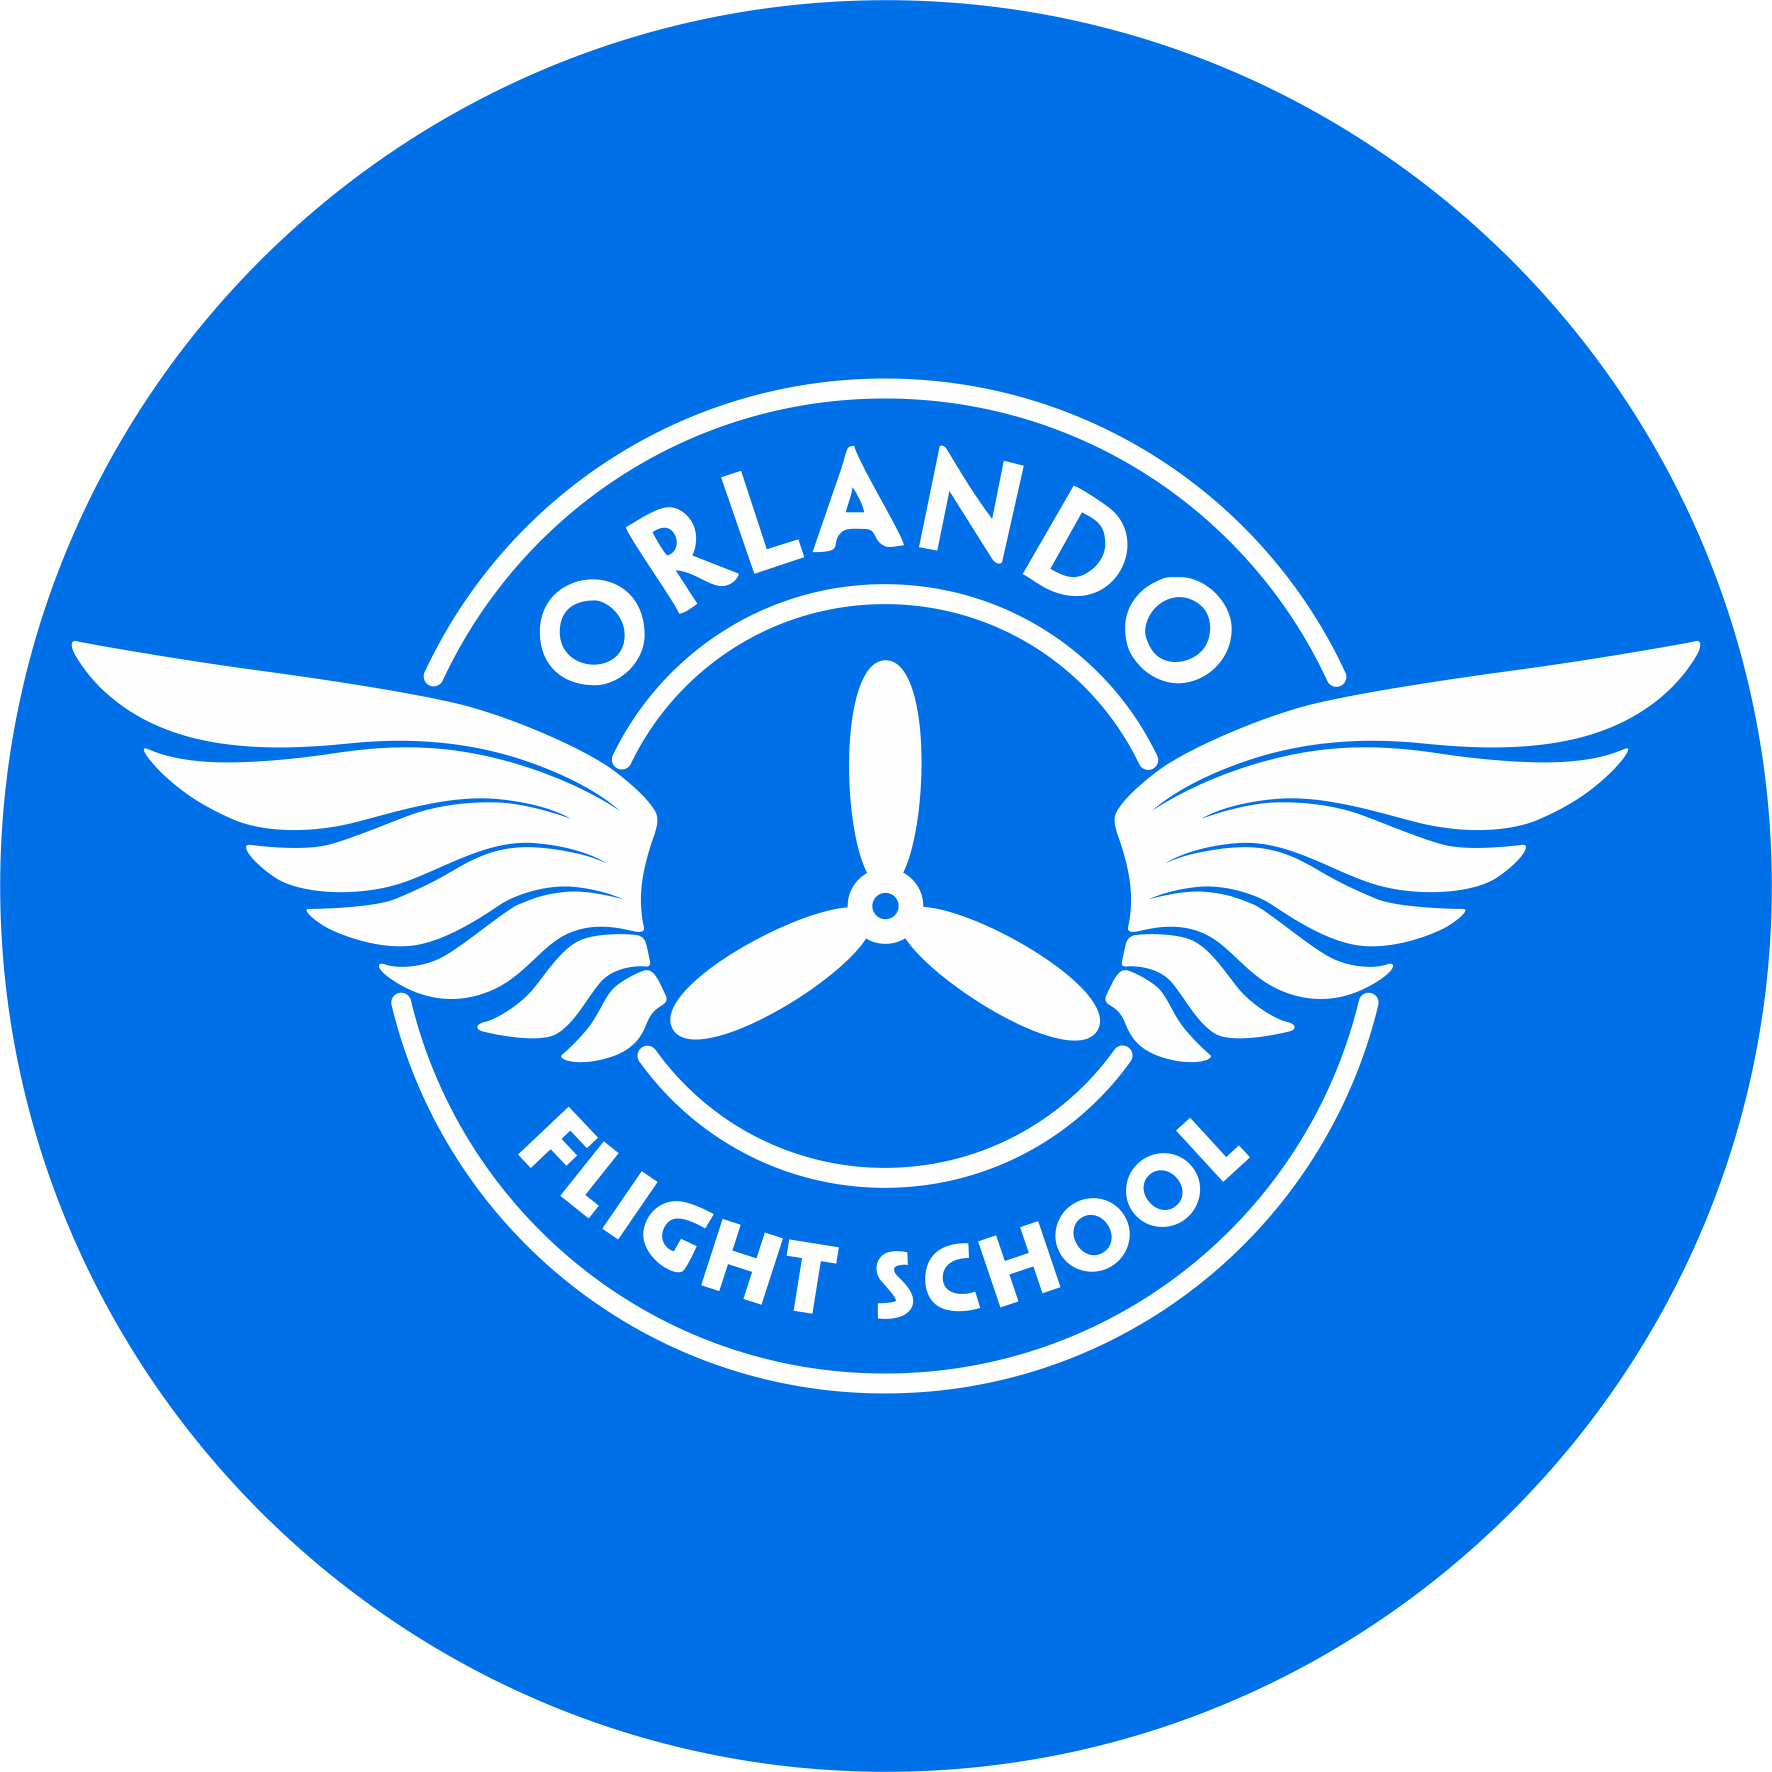 ORLANDO FLIGHT SCHOOL